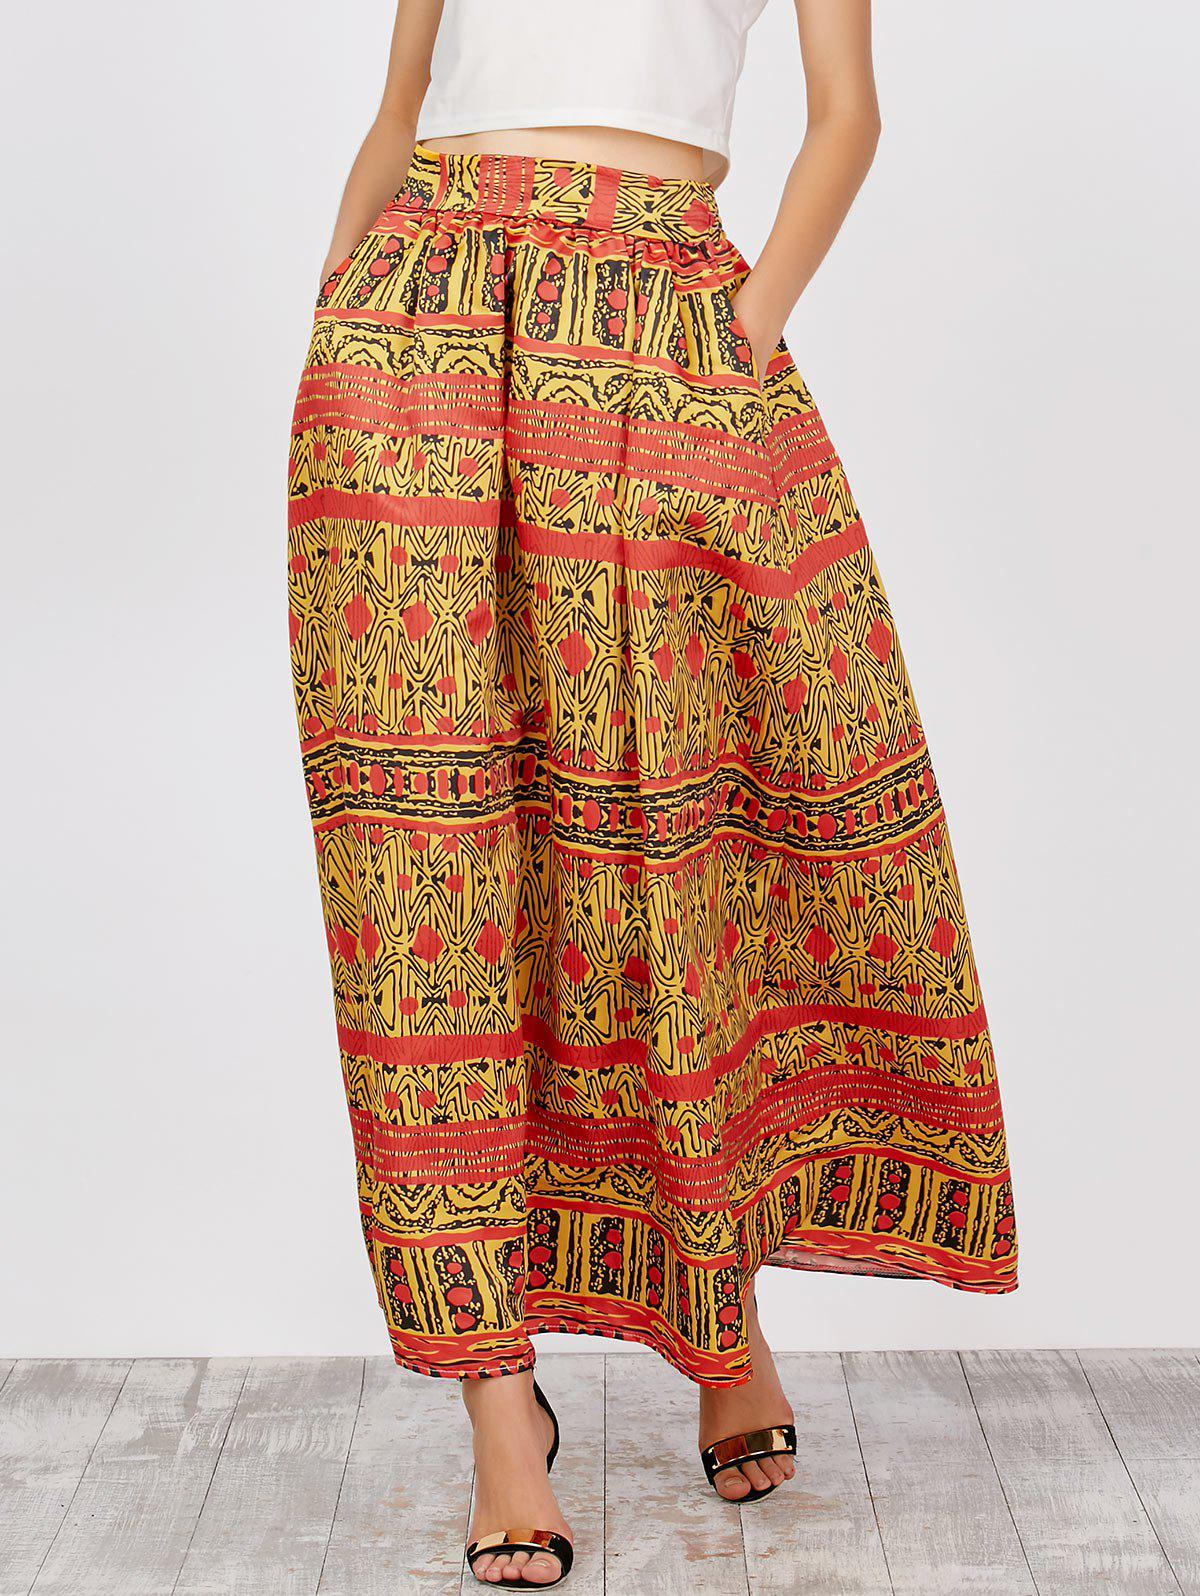 High Waist African Print Maxi Skirts cmam implant04 implant jaw model medical science educational teaching anatomical models